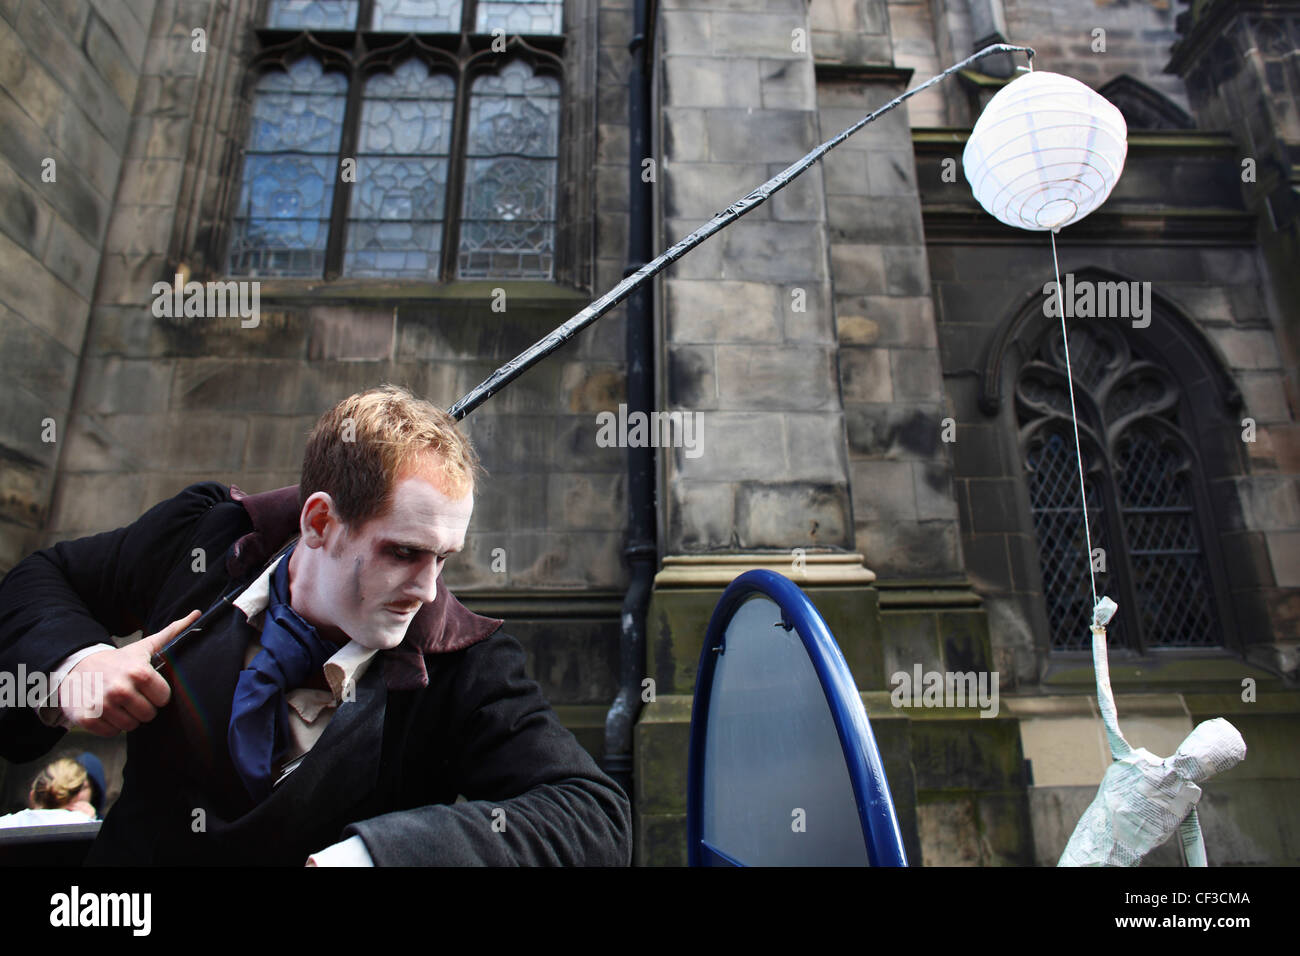 An artiste from The River People performing in the Royal Mile during the Edinburgh festival fringe. - Stock Image